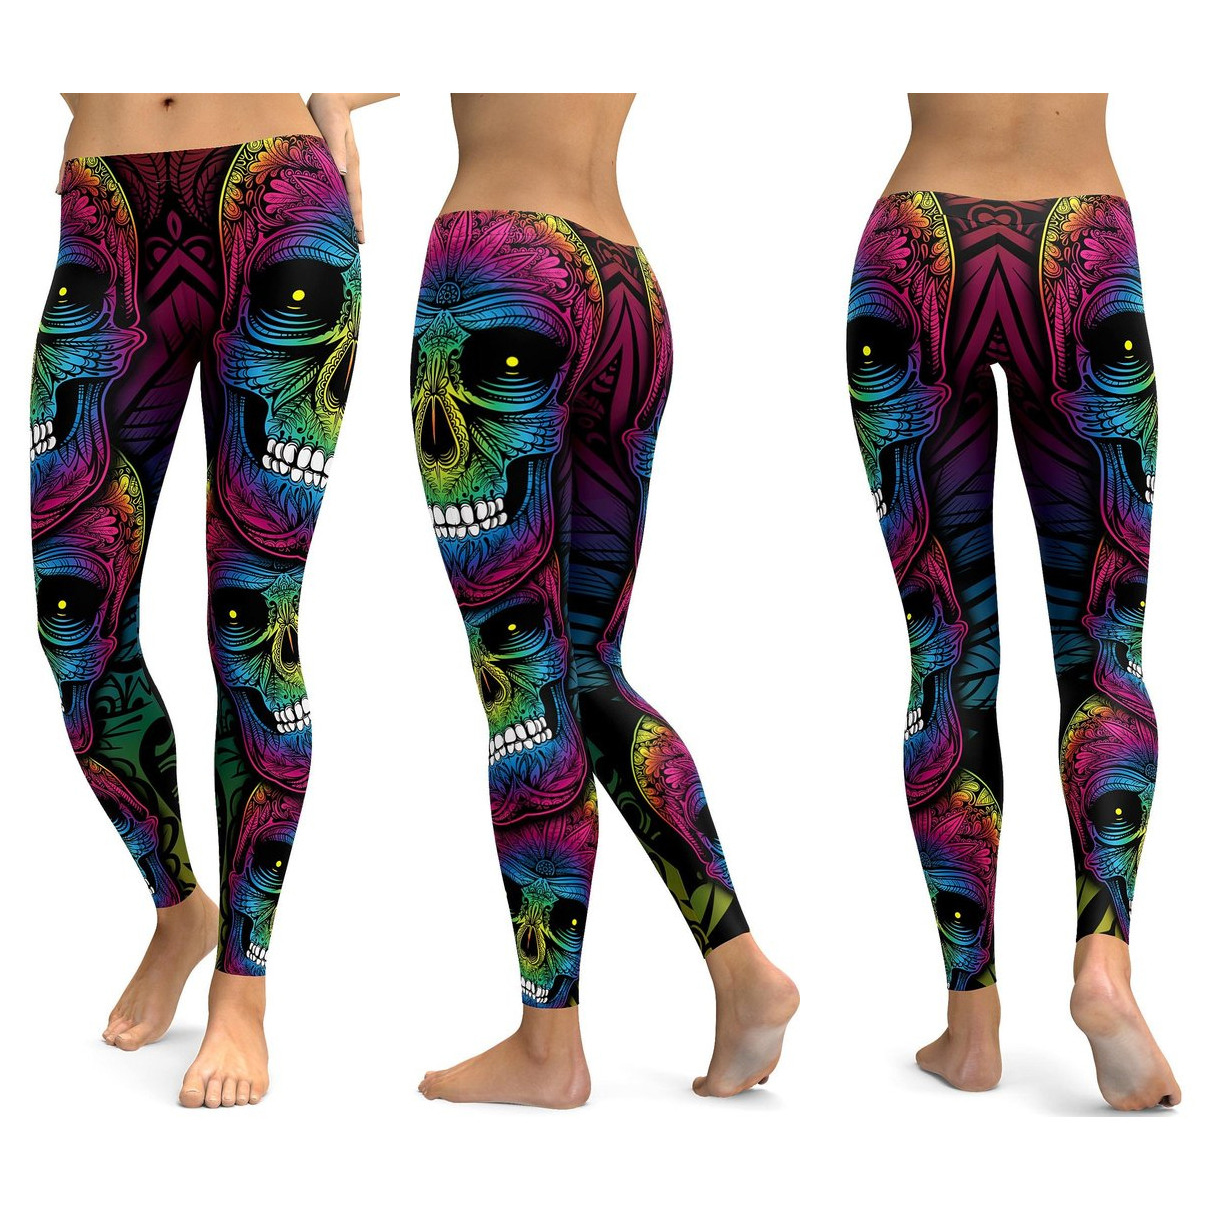 Skull Leggings Yoga Pants Women Sports Pants Fitness Running Sexy Push Up Gym Wear Elastic Slim Workout Leggings 38